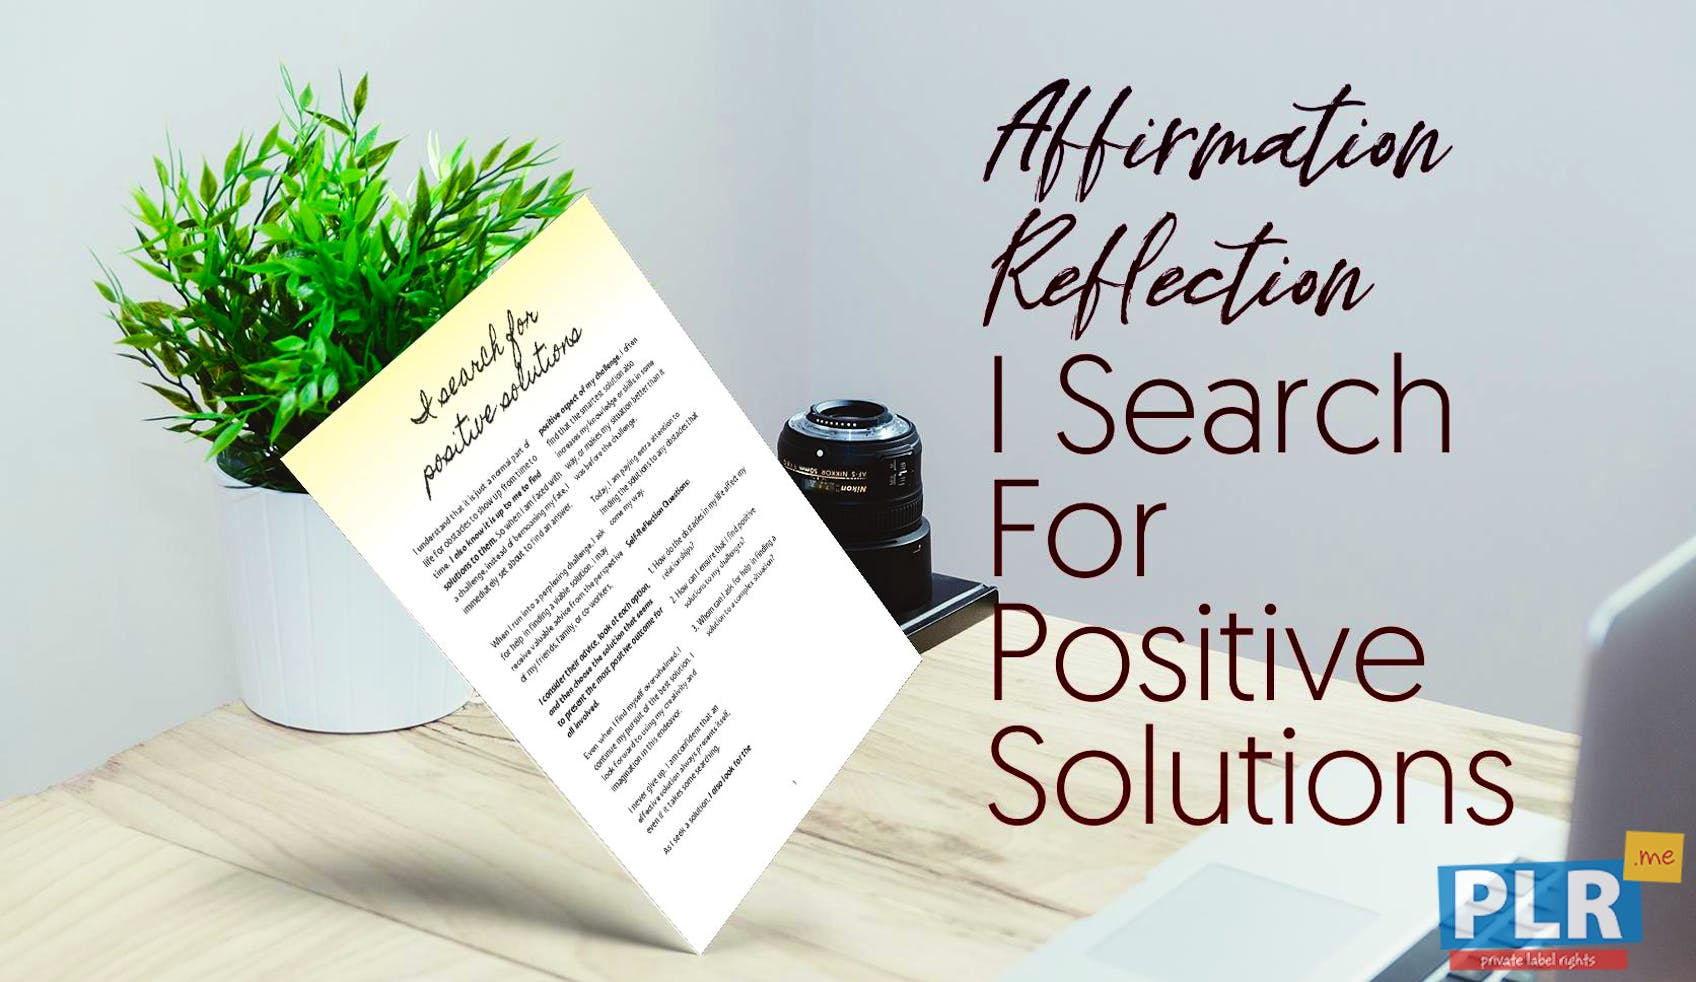 I Search For Positive Solutions